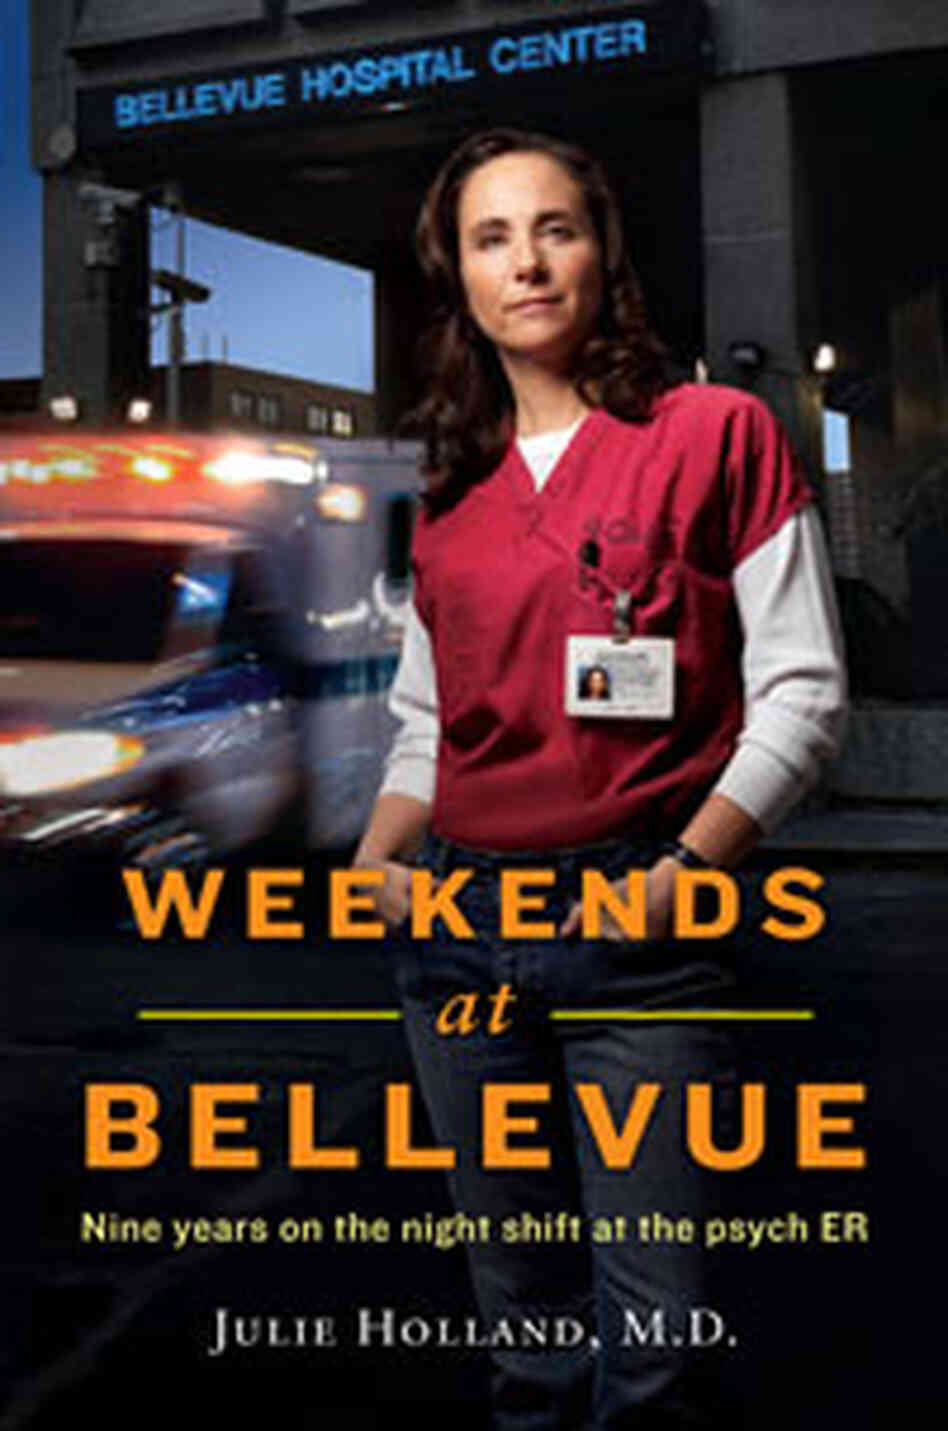 'Weekends at Bellevue'